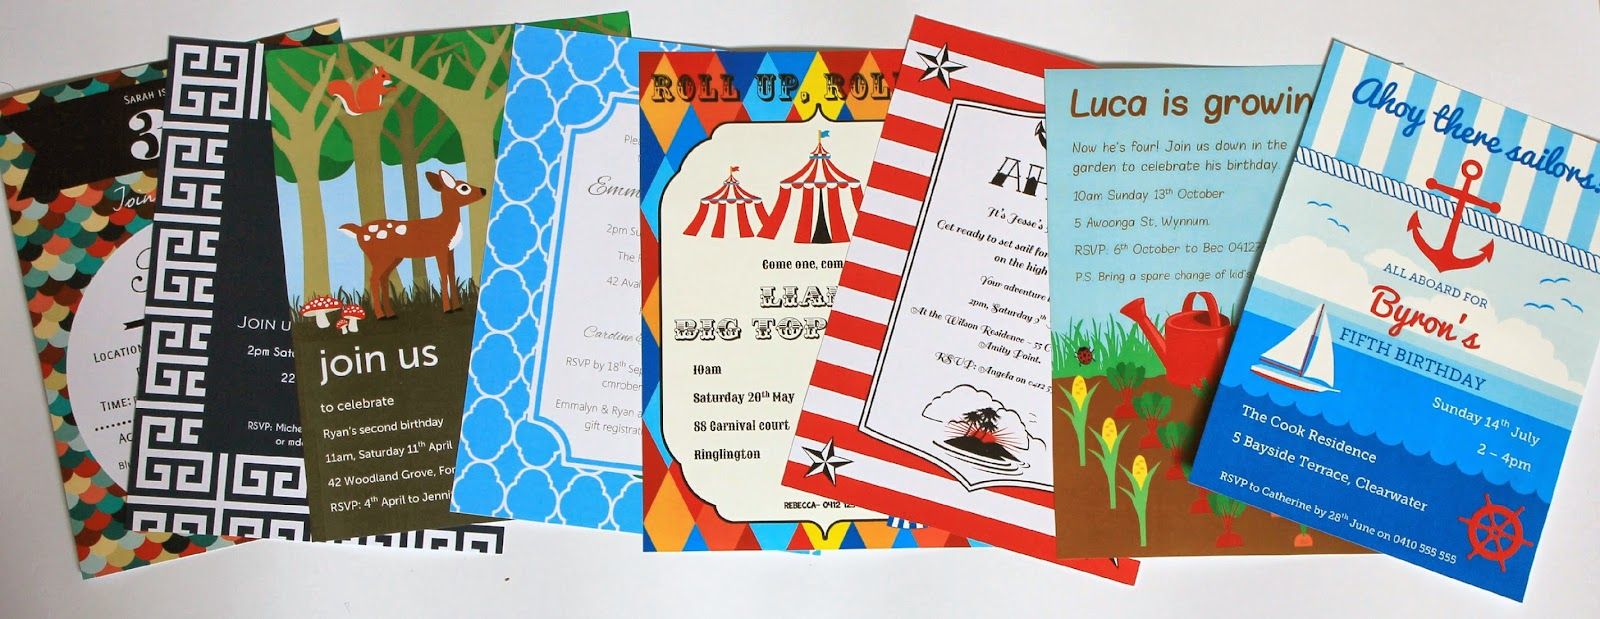 Printable Party Invitations by Love That Party. SHOP NOW at http://lovethatparty.bigcartel.com/products